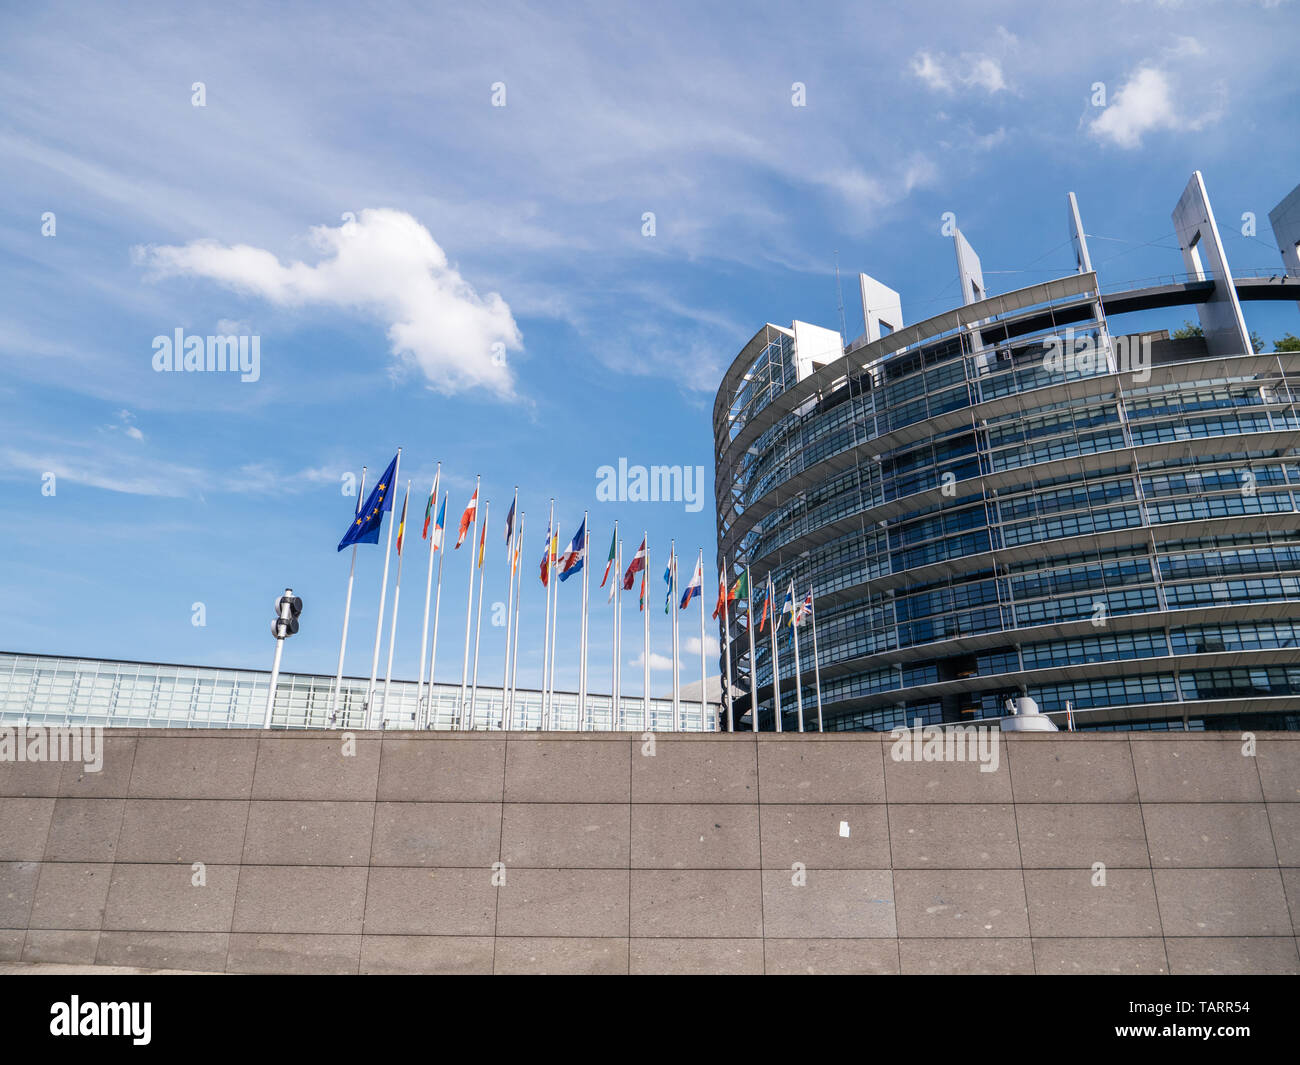 Strasbourg, France - May 26, 2019: European Parliament headquarter with all European Union flags waving - clear blue sky in background - Stock Image